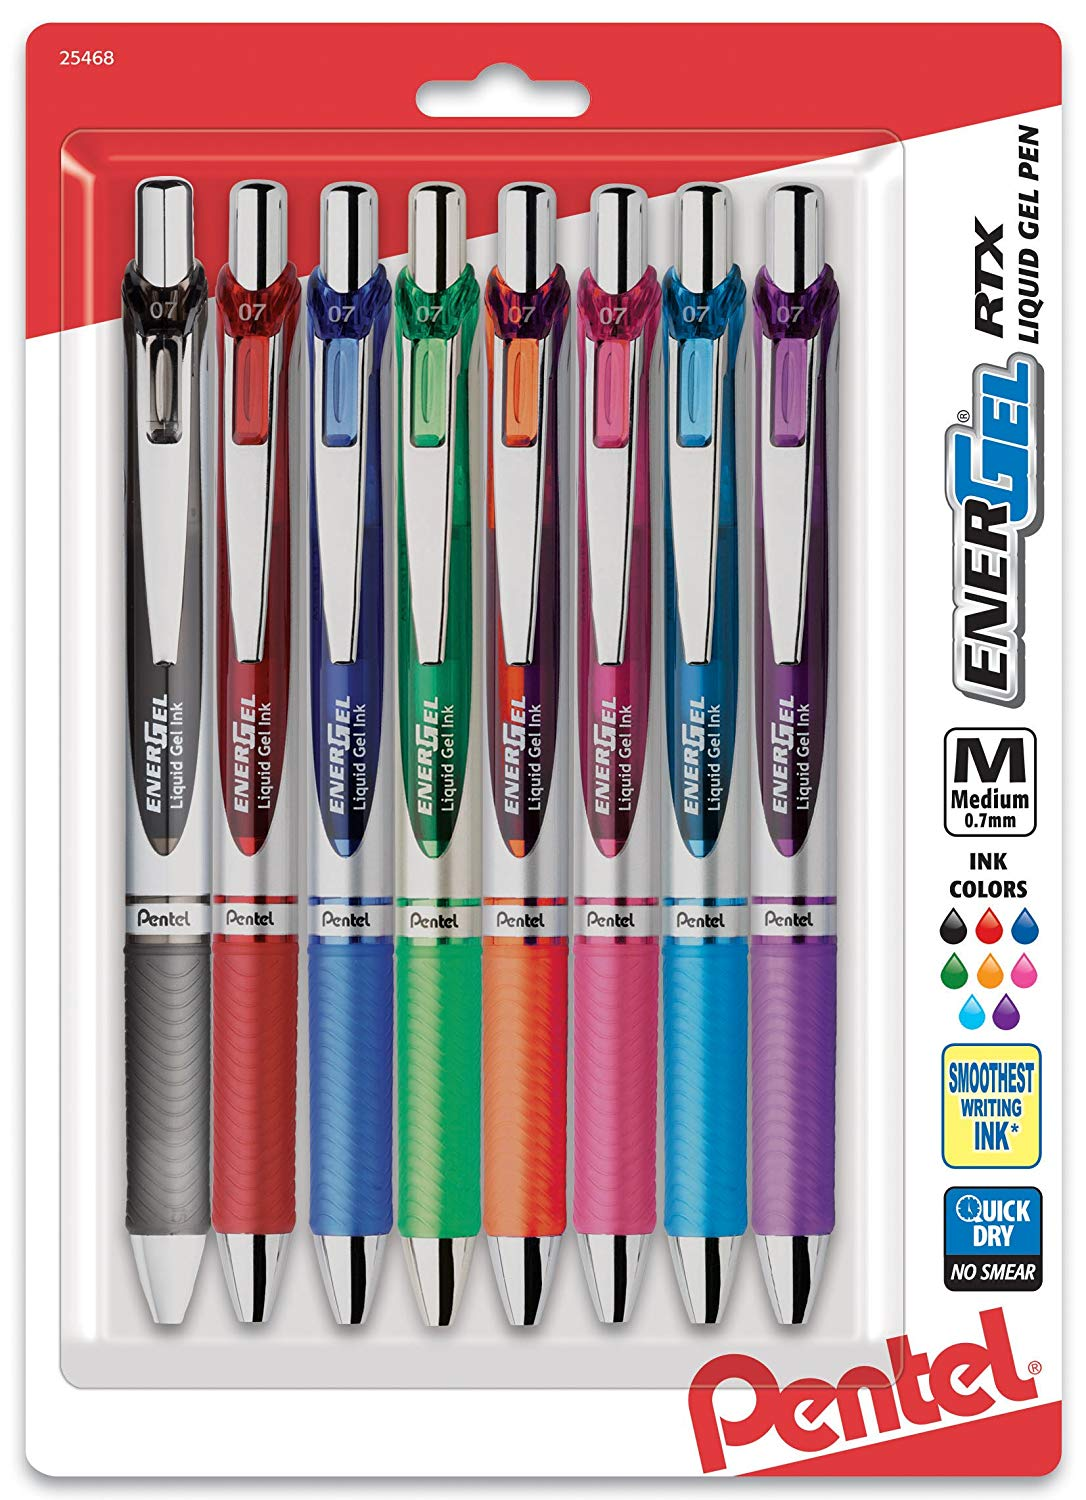 Pentel BL77BP8M, BL77BP8M1, BL77BP8M2 EnerGel RTX Retractable Liquid Gel Pens, 0.7mm Medium Metal Tip, Assorted Ink, 8-Pack